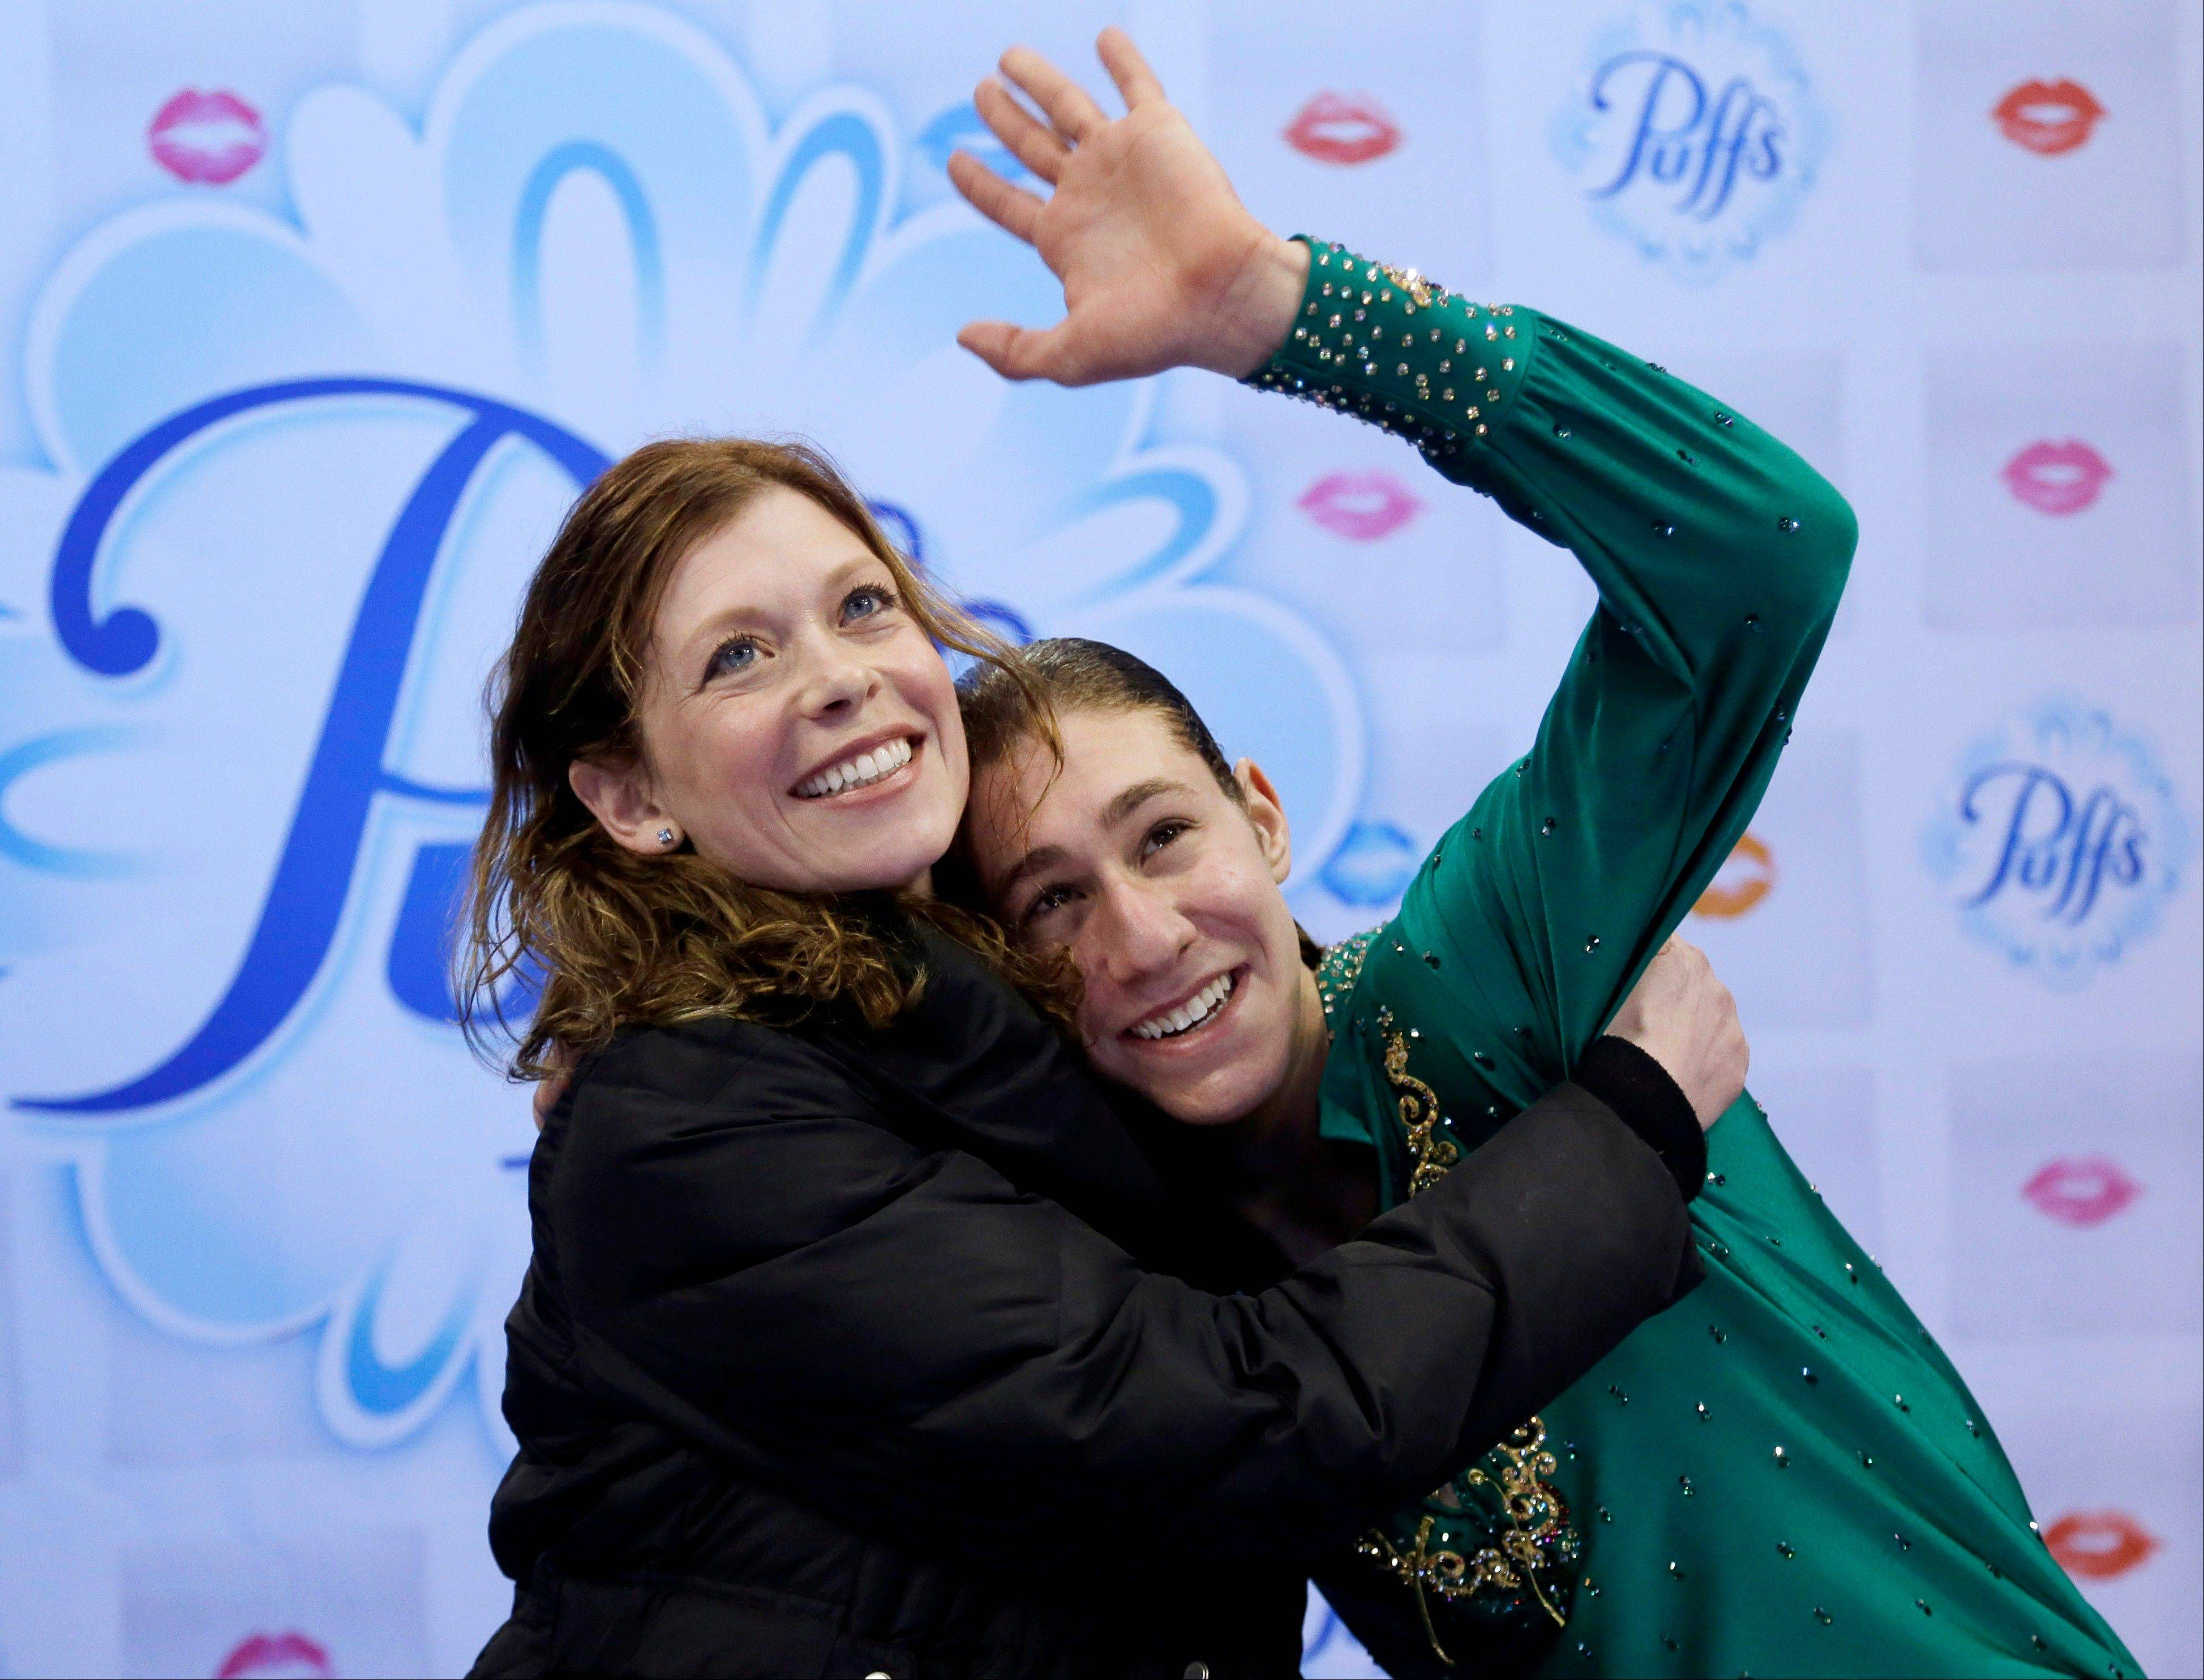 Highland Park's Jason Brown, right, celebrates with his coach, Kori Ade, as he learns his scores after competing in the men's free skate Sunday at the U.S. Figure Skating Championships in Boston.